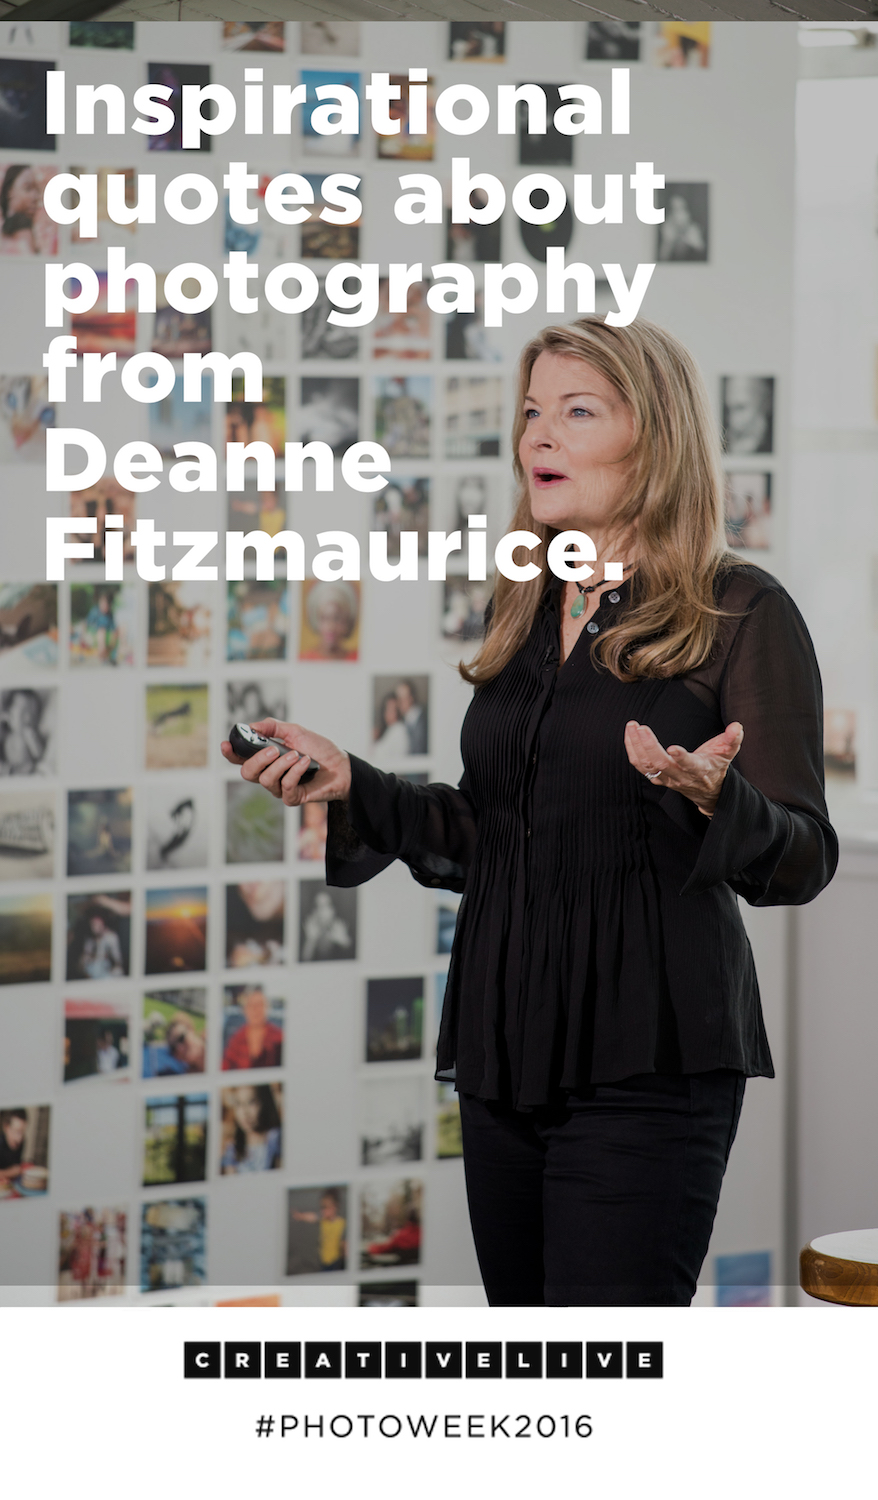 Deanne Fitzmaurice's most inspirational quotes about photography from Photo Week 2016